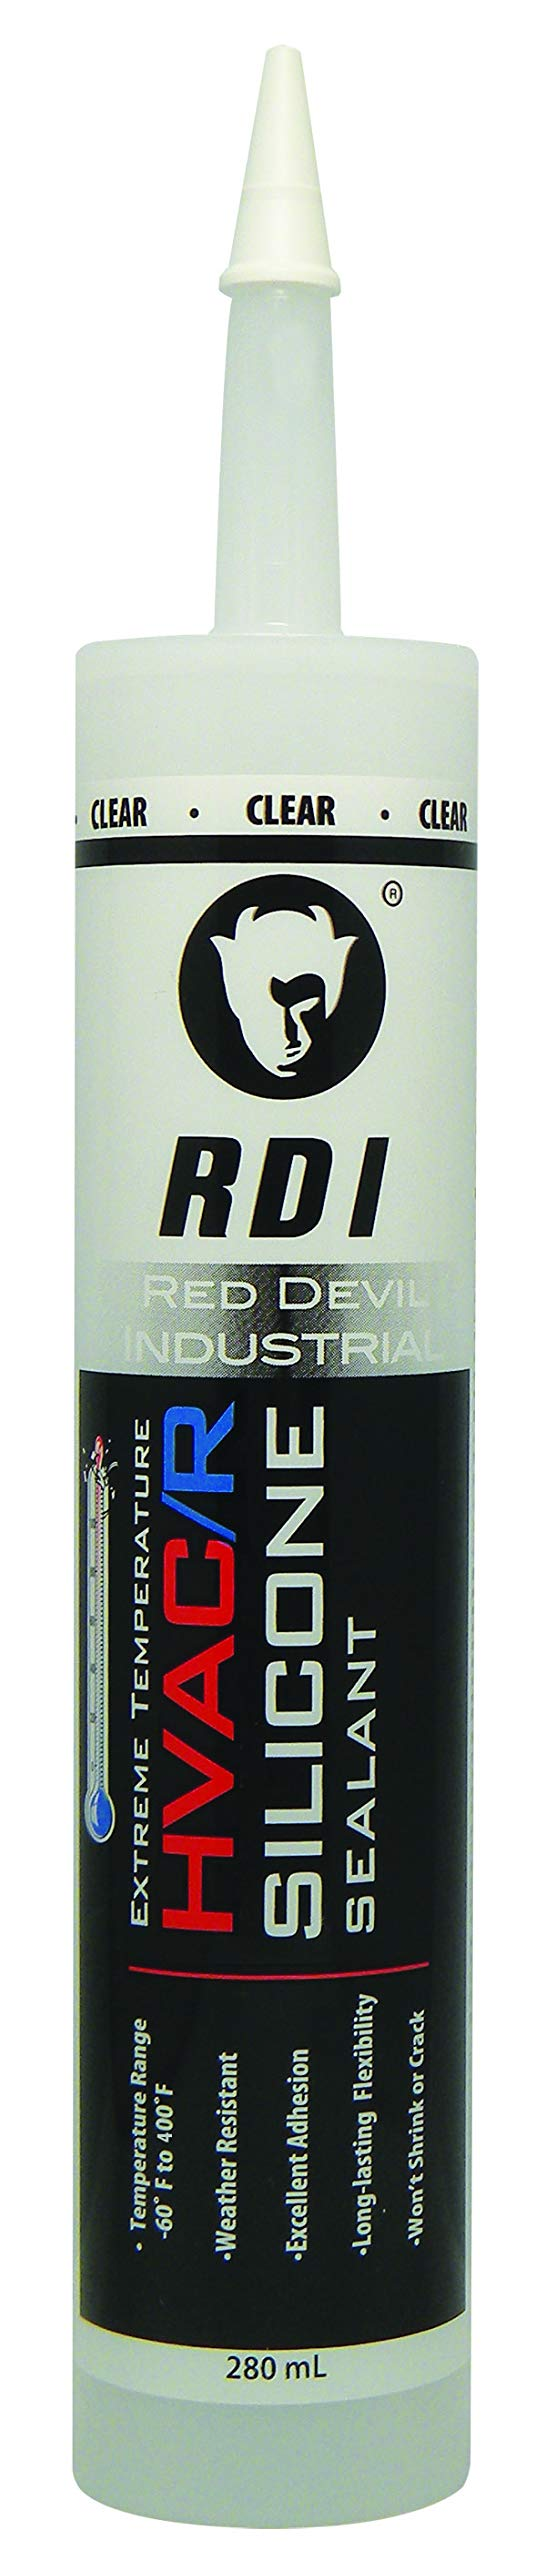 Red Devil 89712 0897 HVAC/R, 280 ml, Clear, Case of 12 Extreme Temperature Silicone Sealant, Pack, Piece by Red Devil